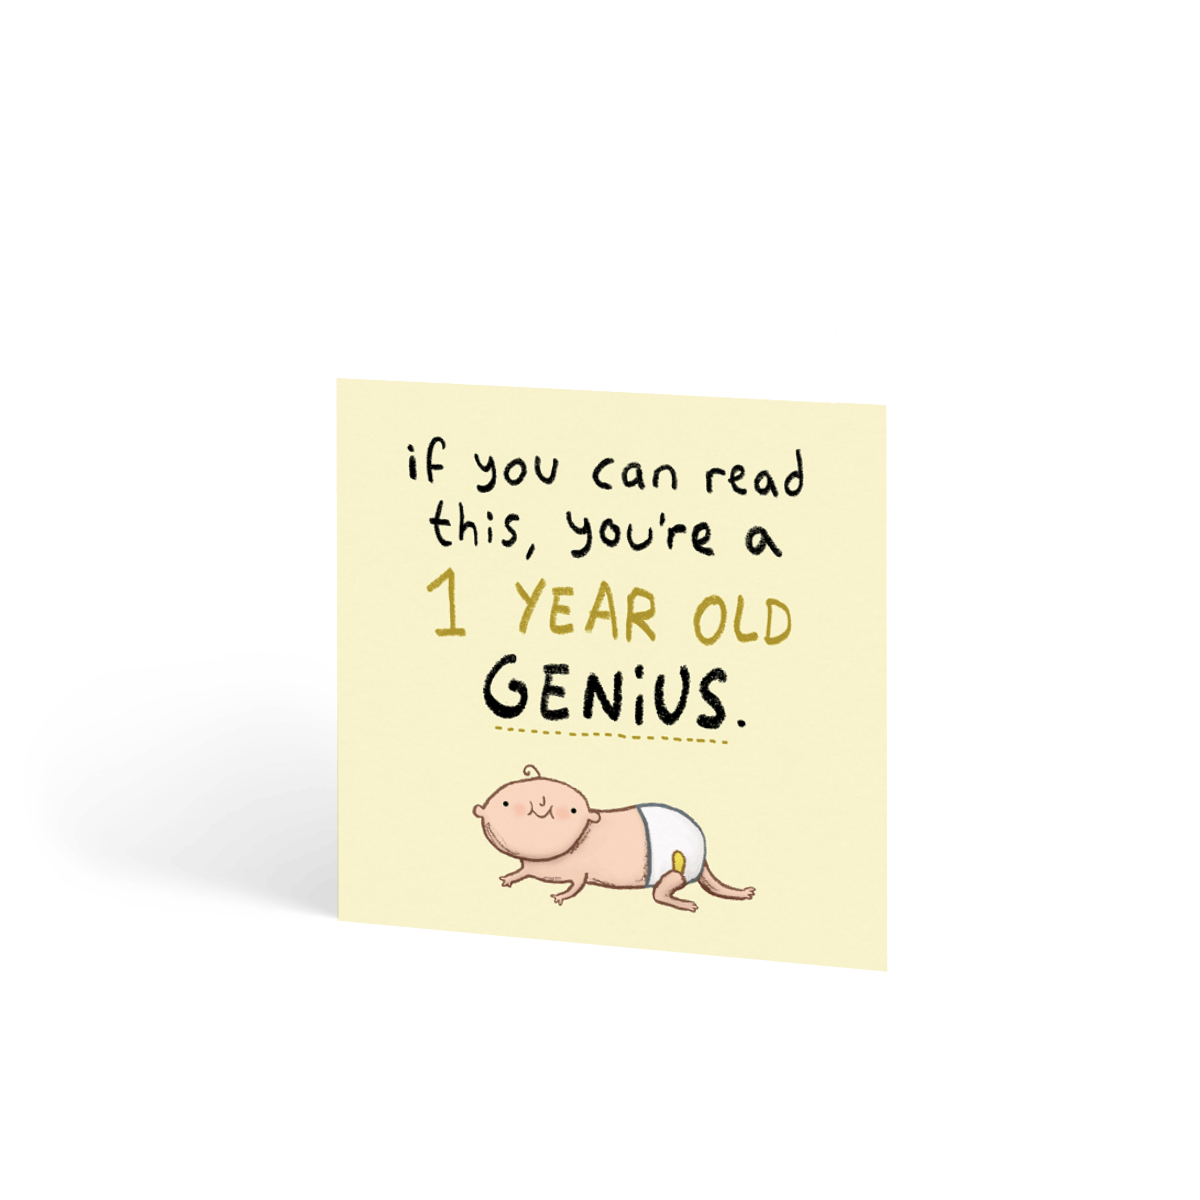 One Year Old Genius Https3a2f2fpapier2fproduct Image2f6852